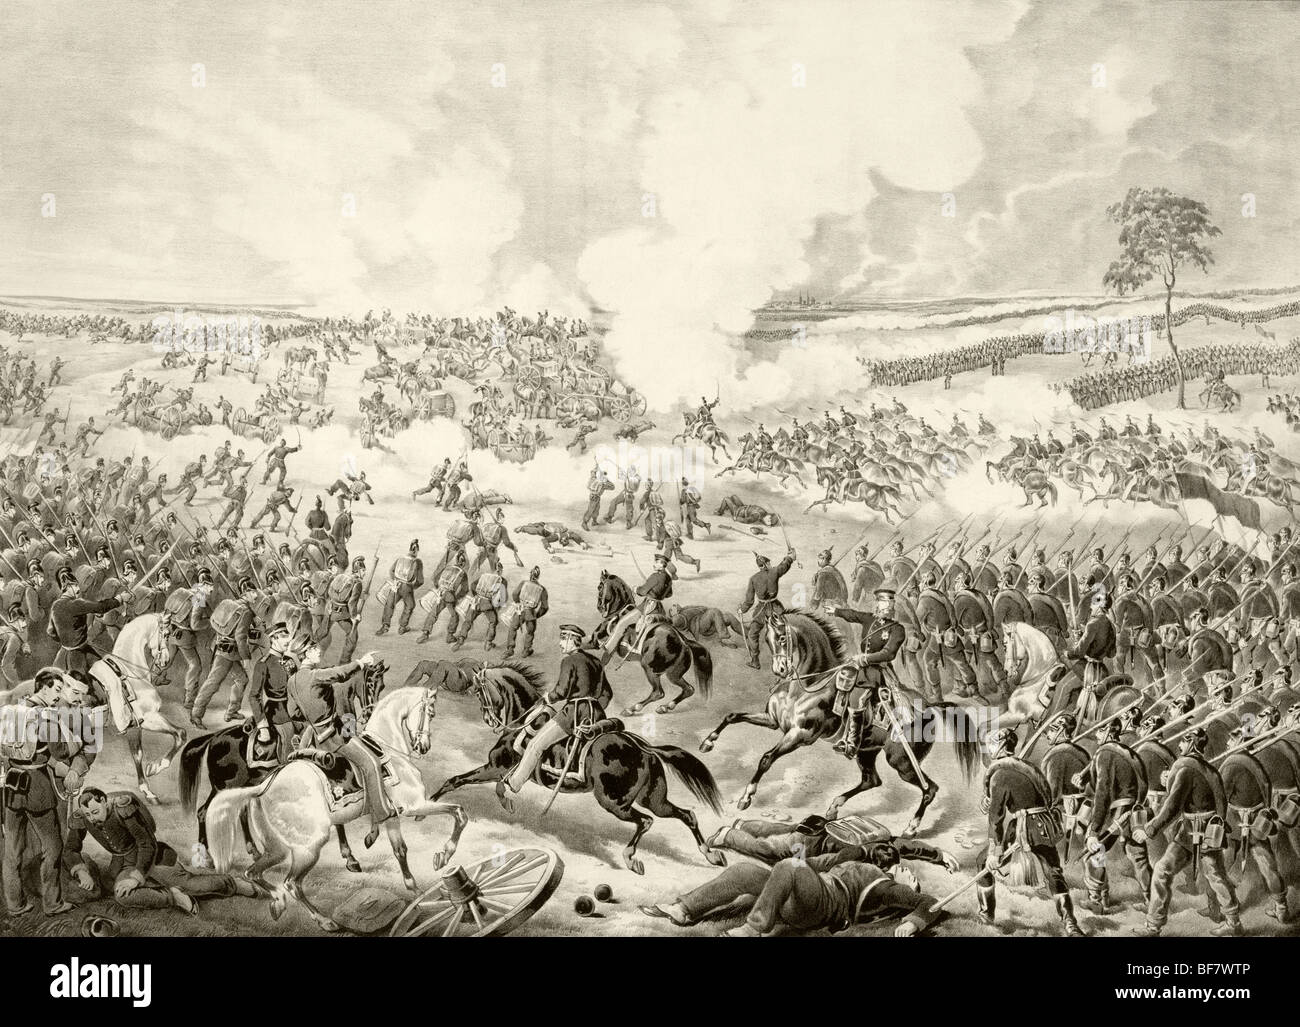 Battle of Wissembourg, August 4, 1870 during Franco-Prussian War - Stock Image